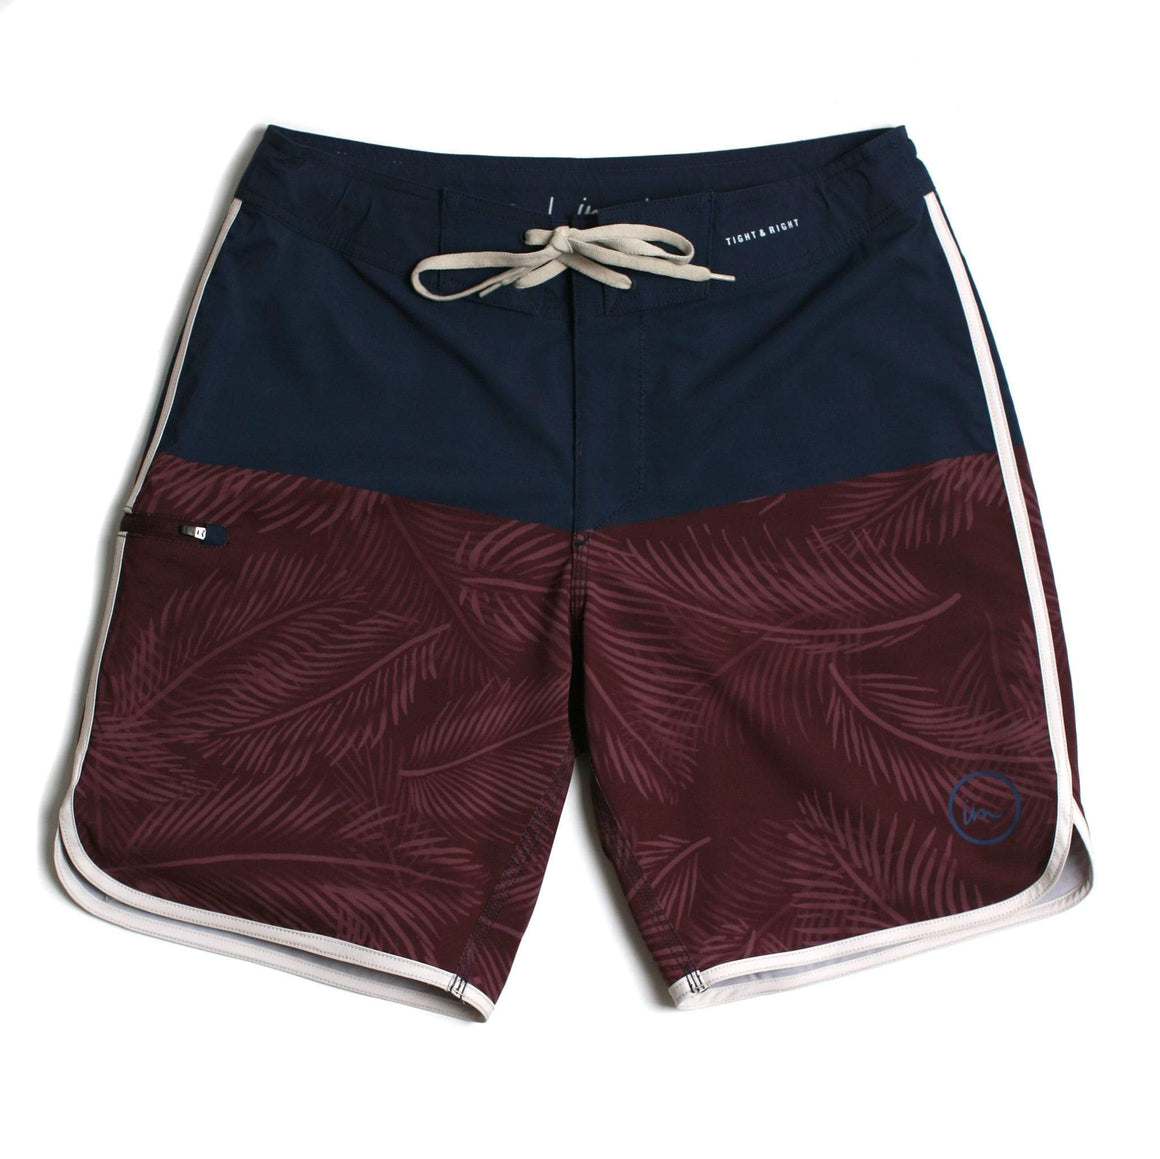 Imperial Motion Vision Boardshort - Navy/Burgundy